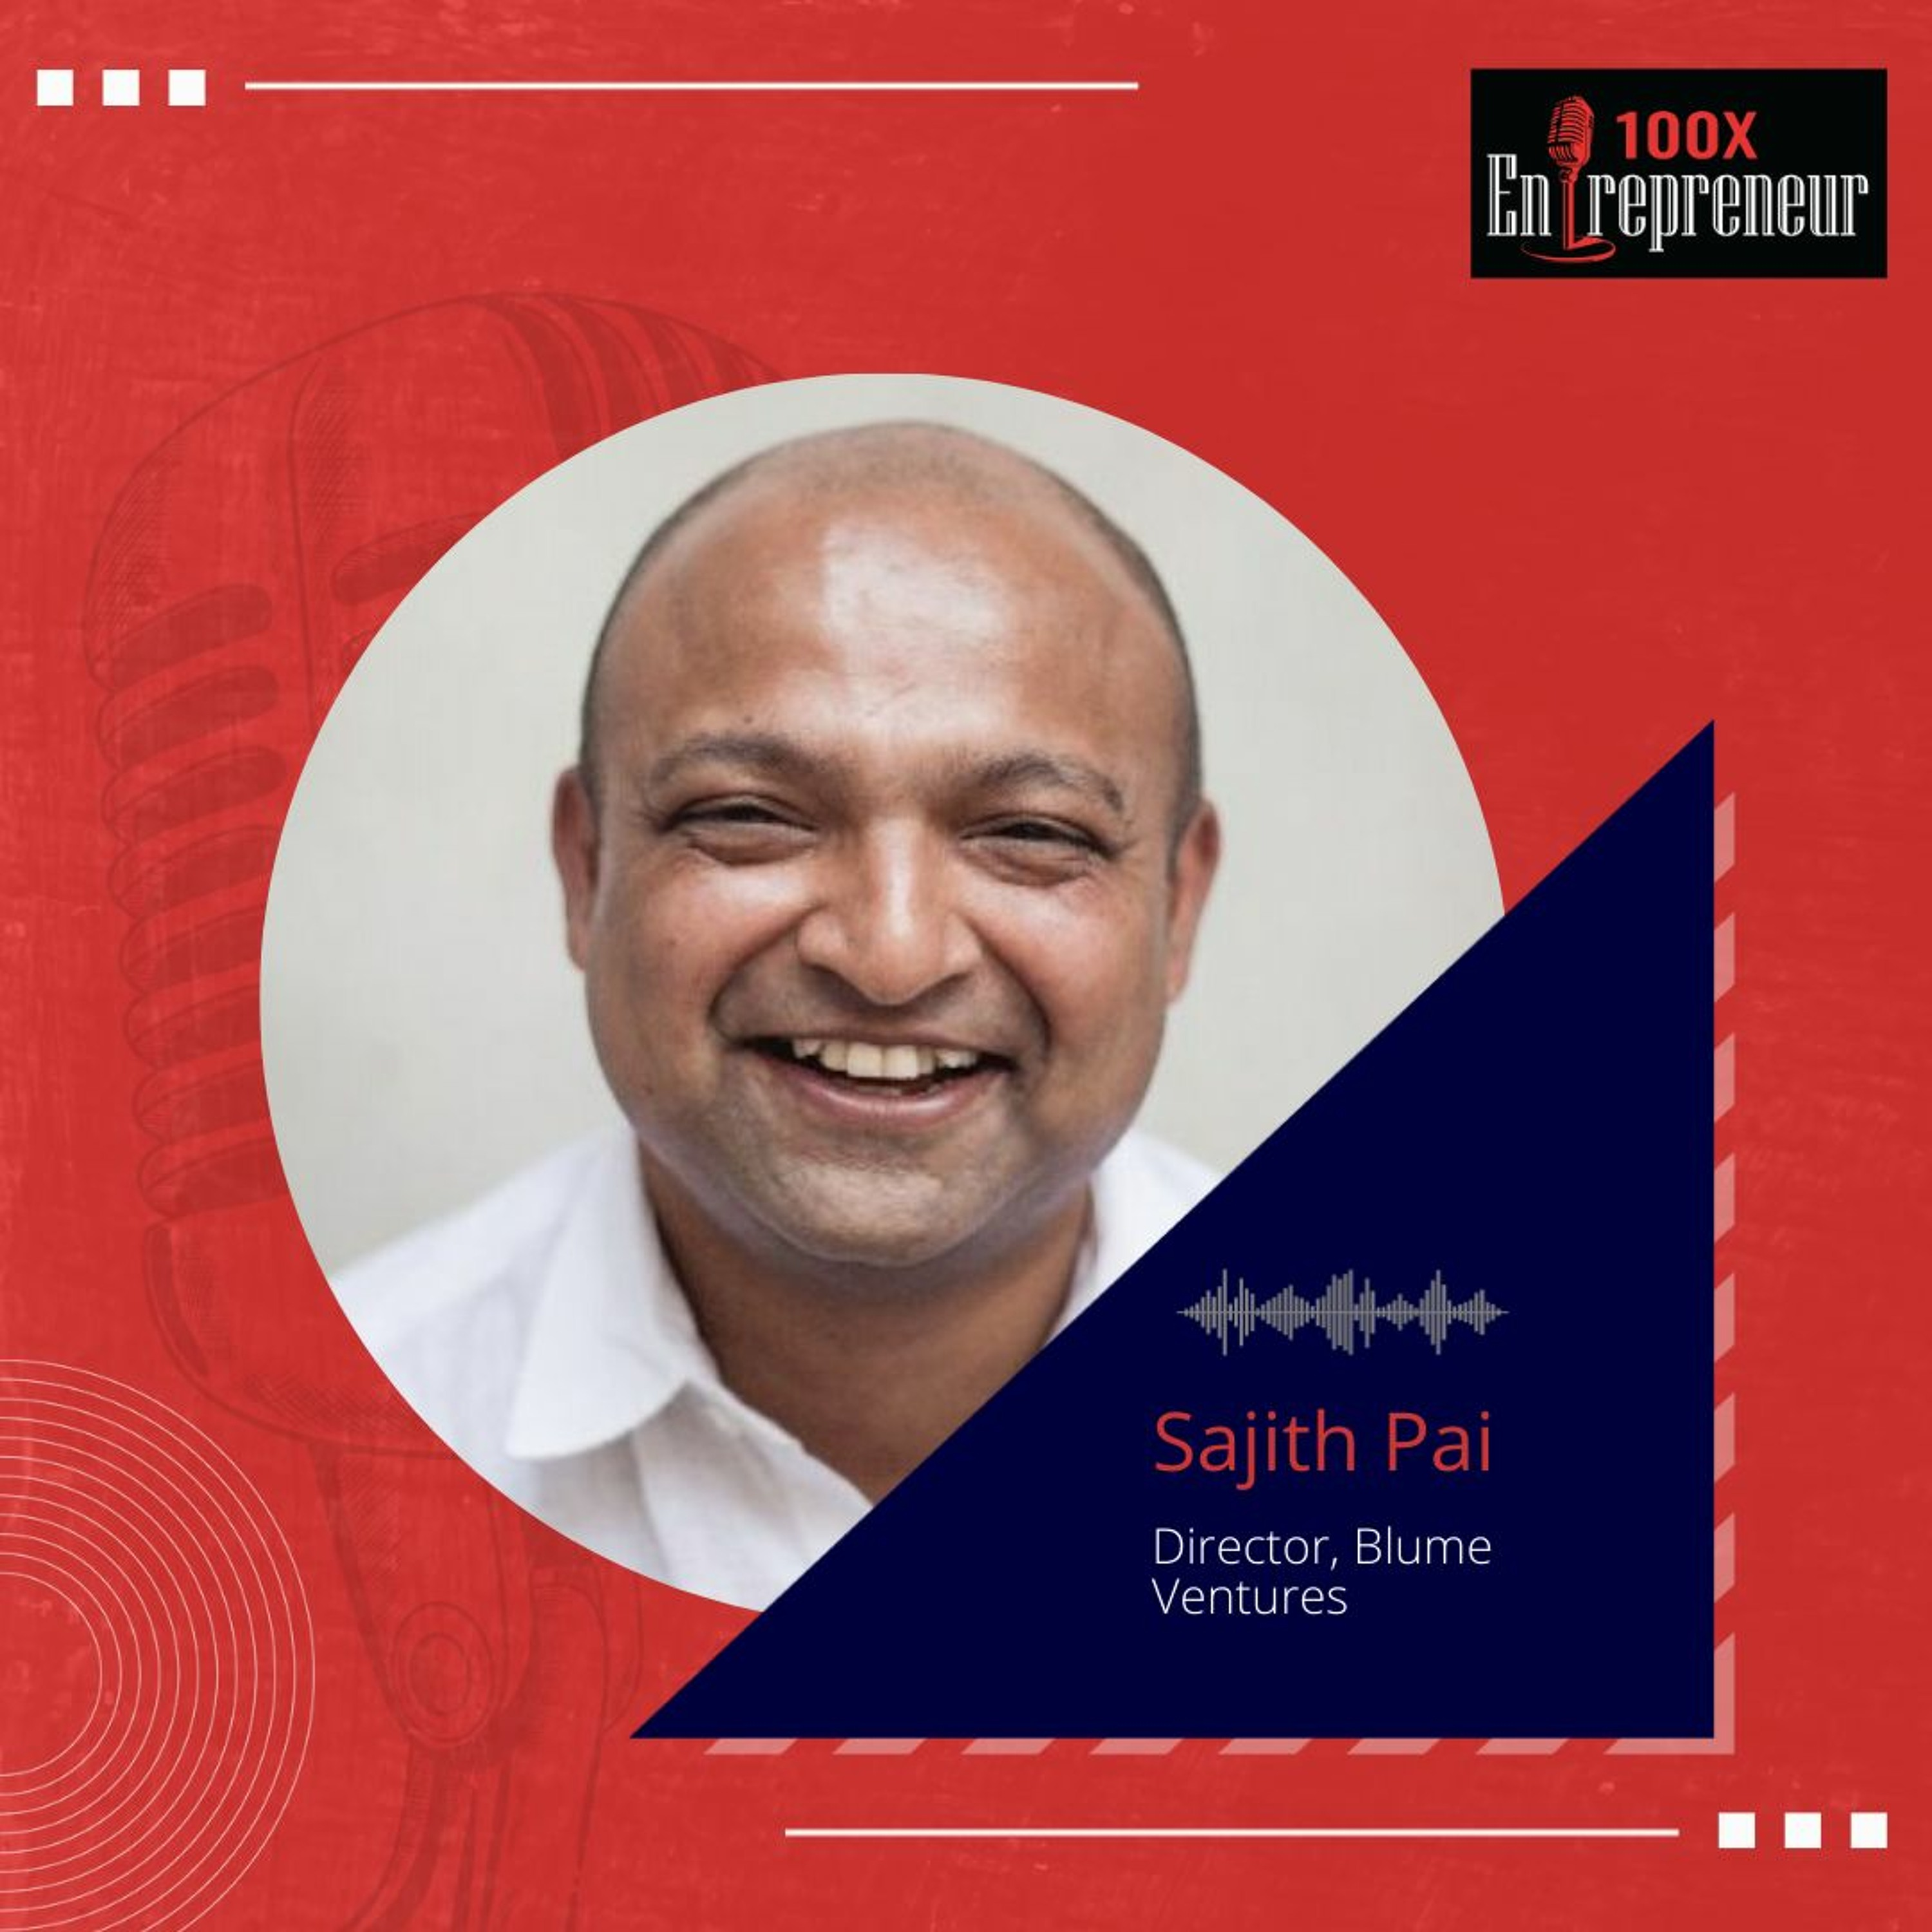 Sajith Pai, Blume Ventures on building personal brands, being open-minded and unlearning to succeed.